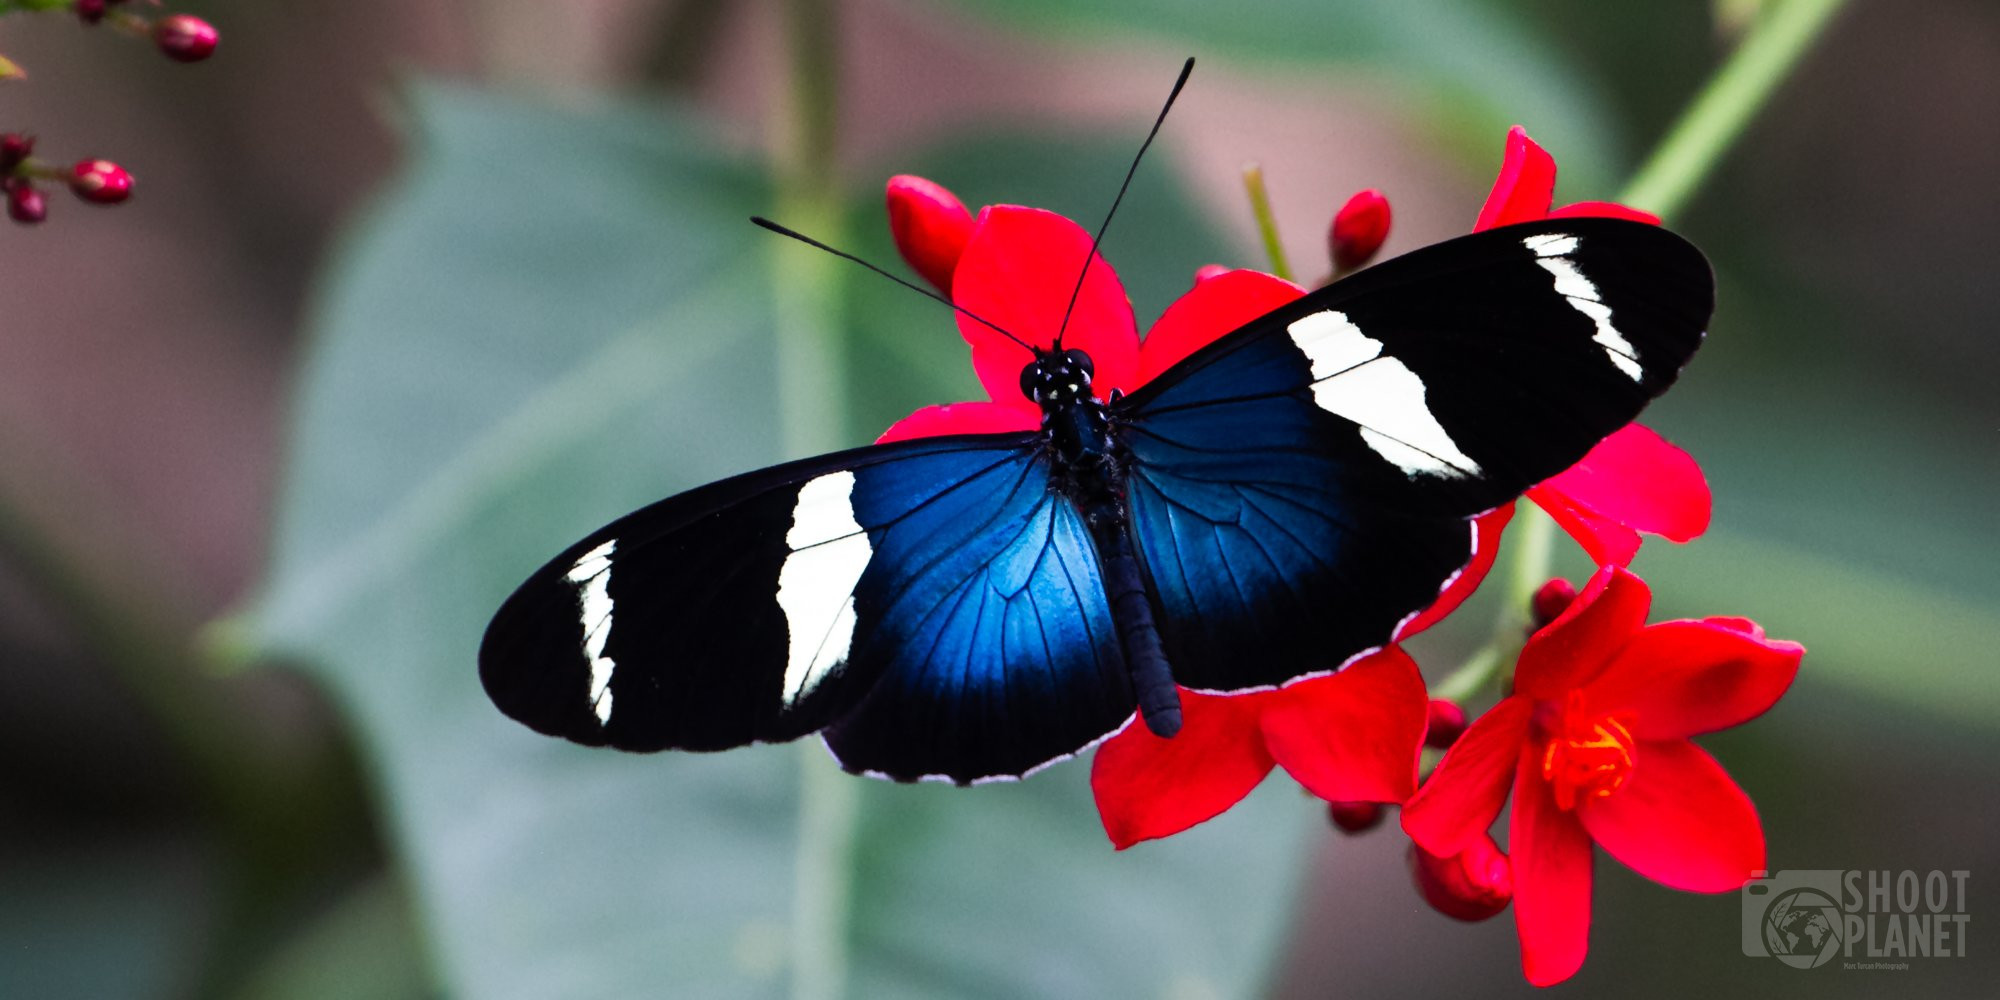 Sara longwing butterfly and flower, Costa Rica